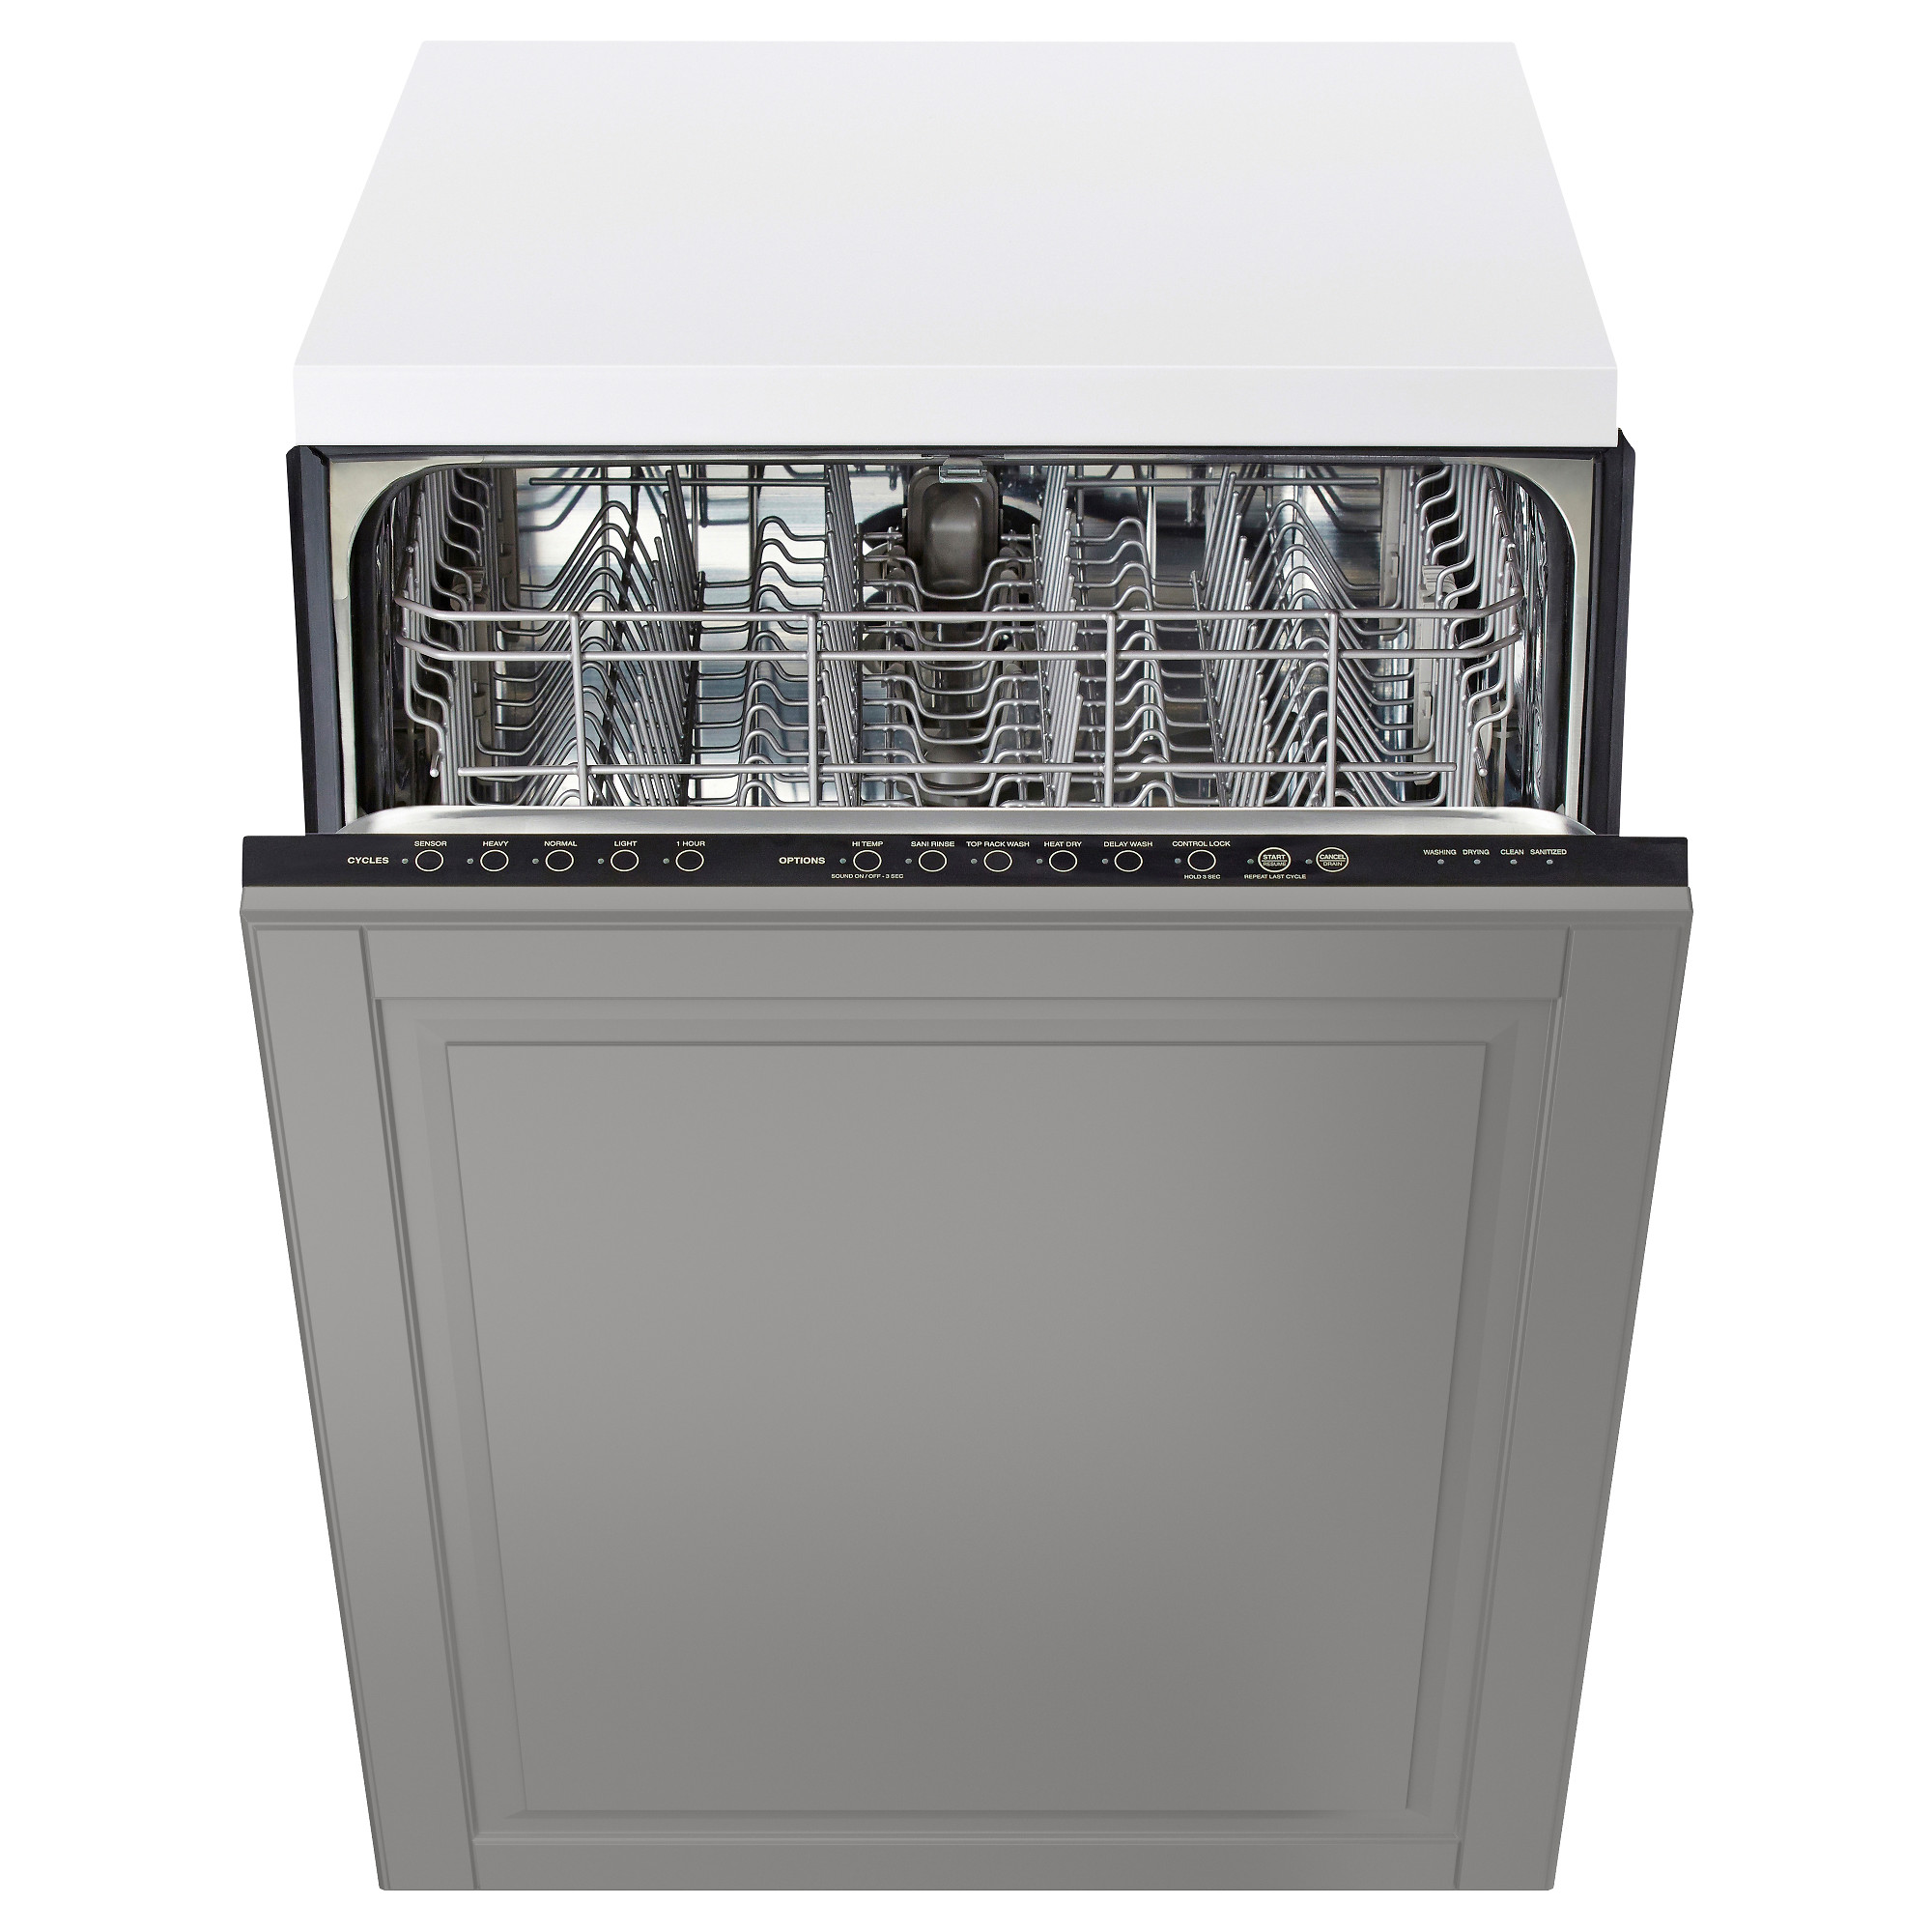 How wide is a standard dishwasher opening?